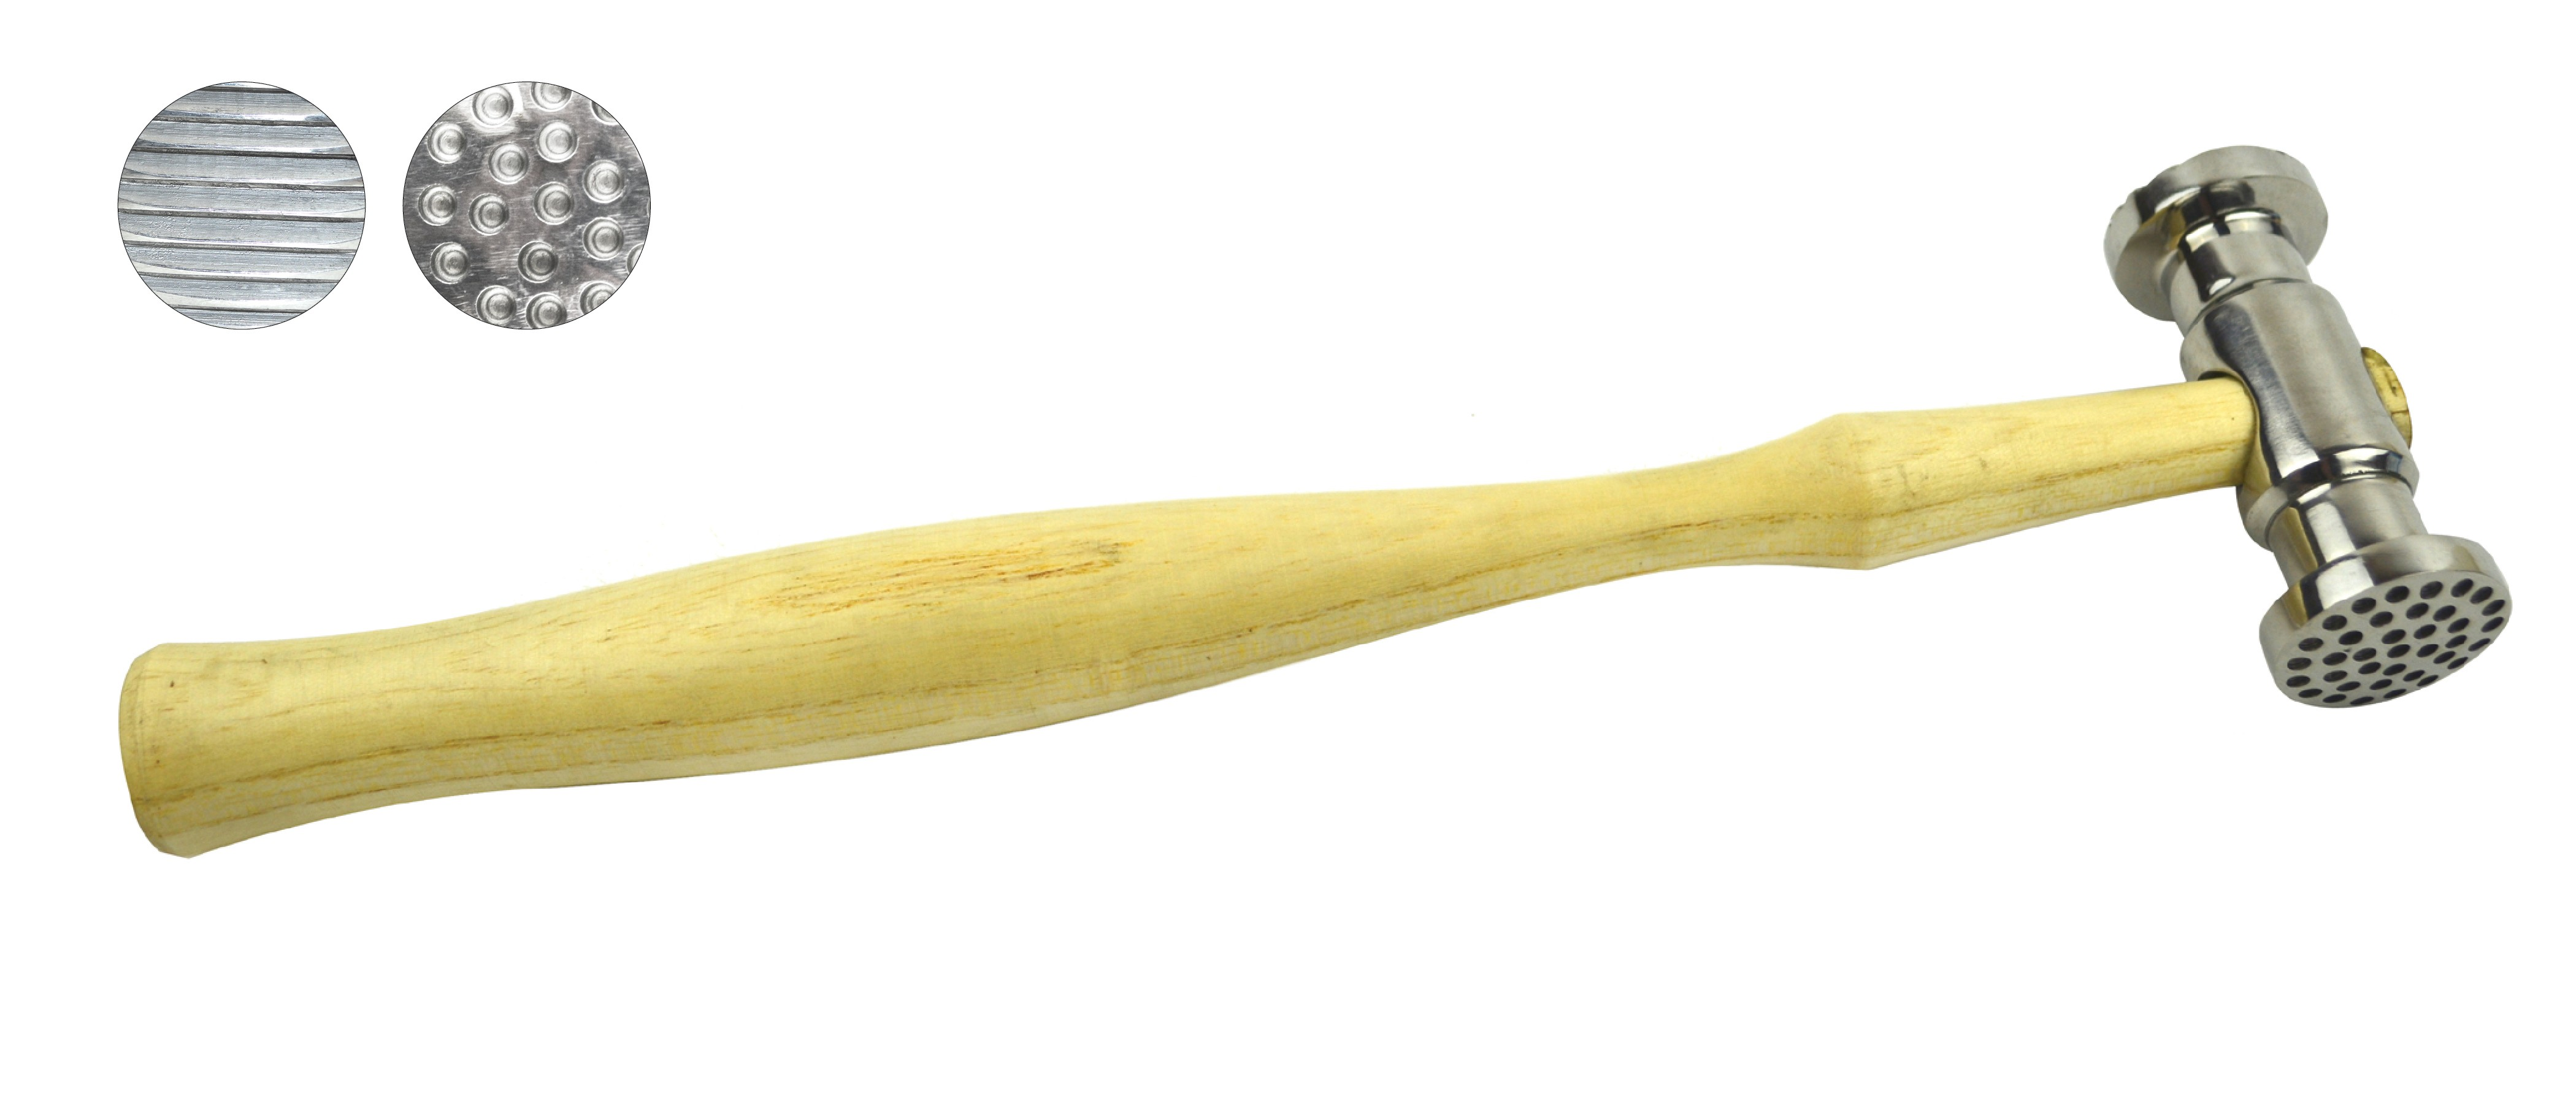 "10"" 9 oz Texturing Hammer w/ Round Dimples and Narrow Pinstripes"